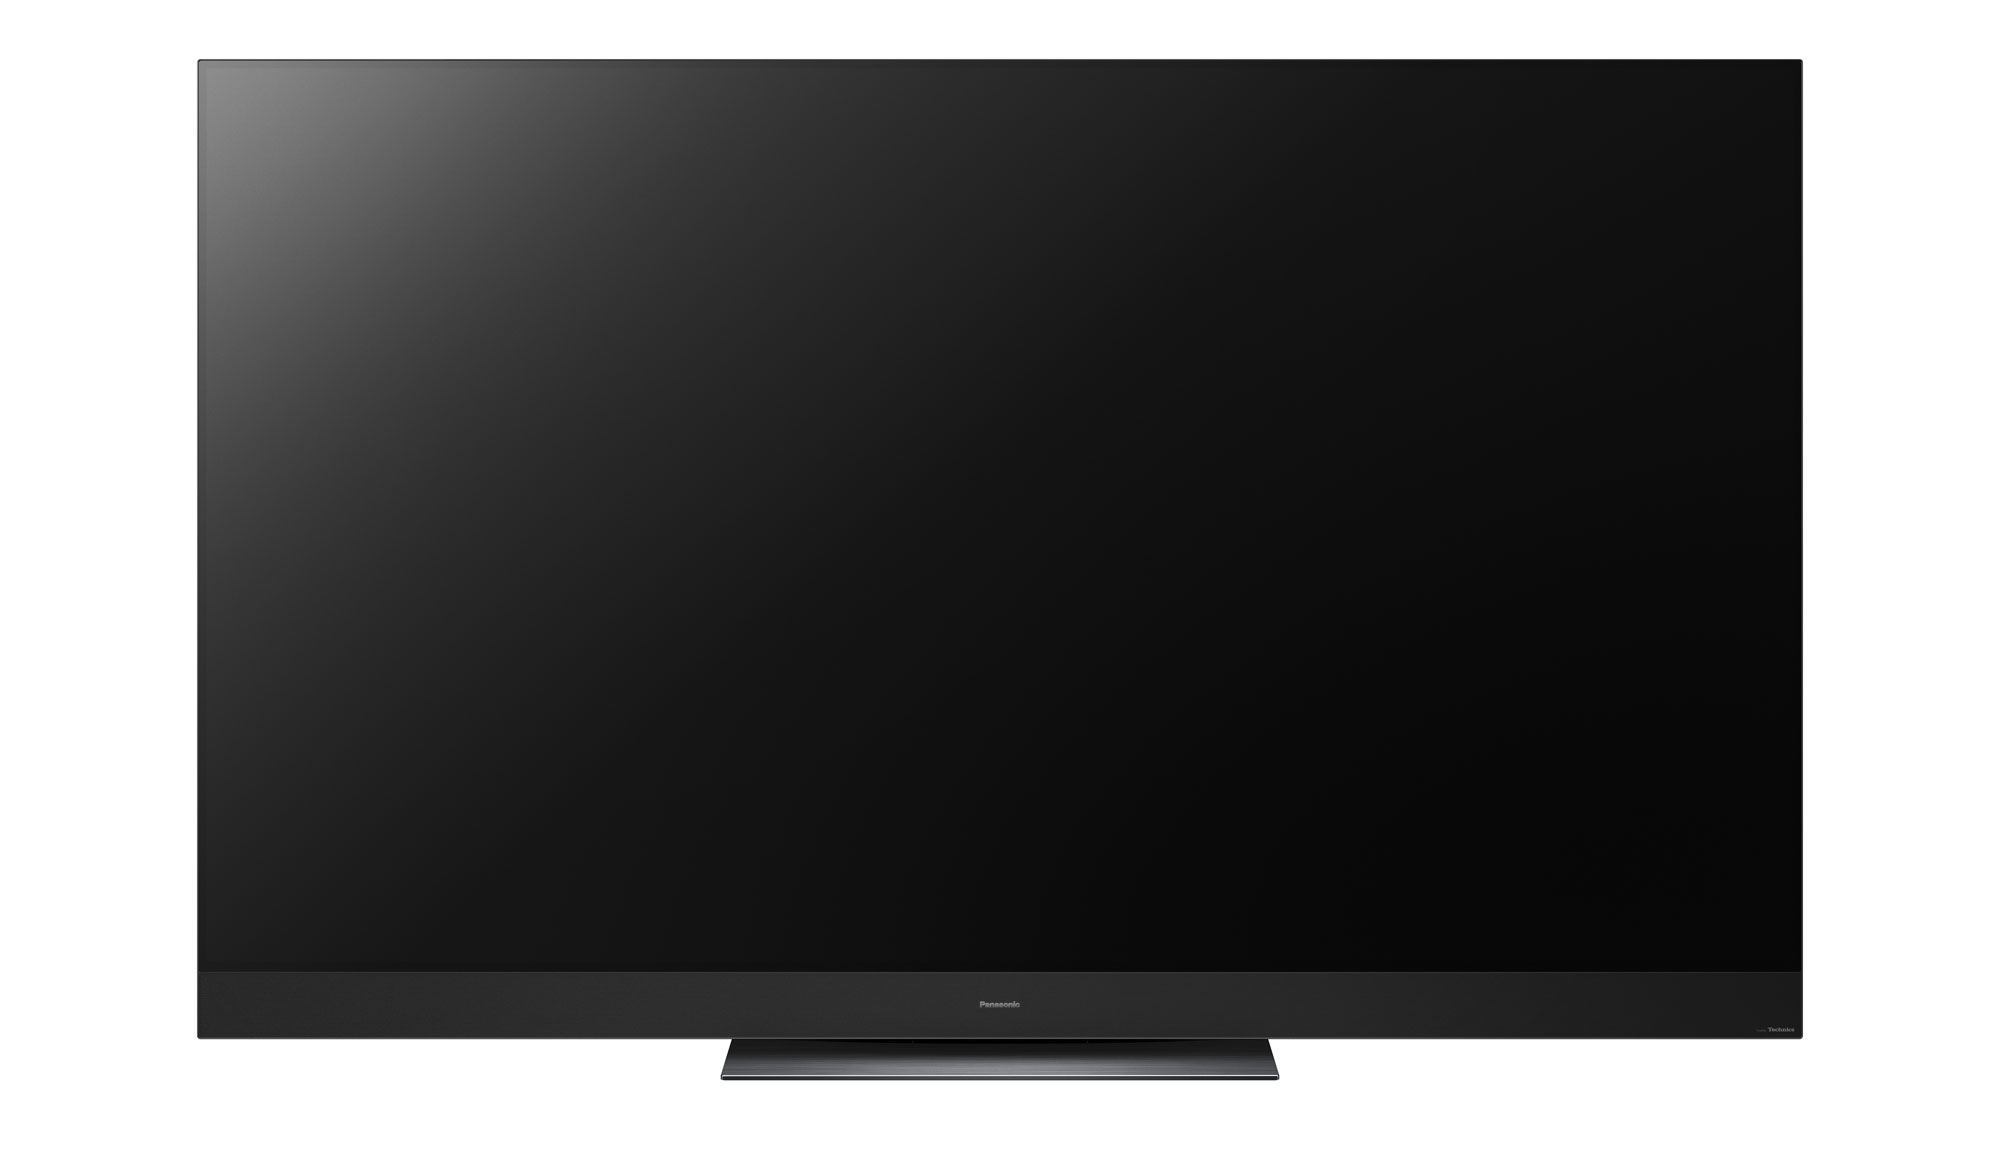 Panasonic presents GZ2000 OLED with HDR10+, Dolby Vision & Atmos